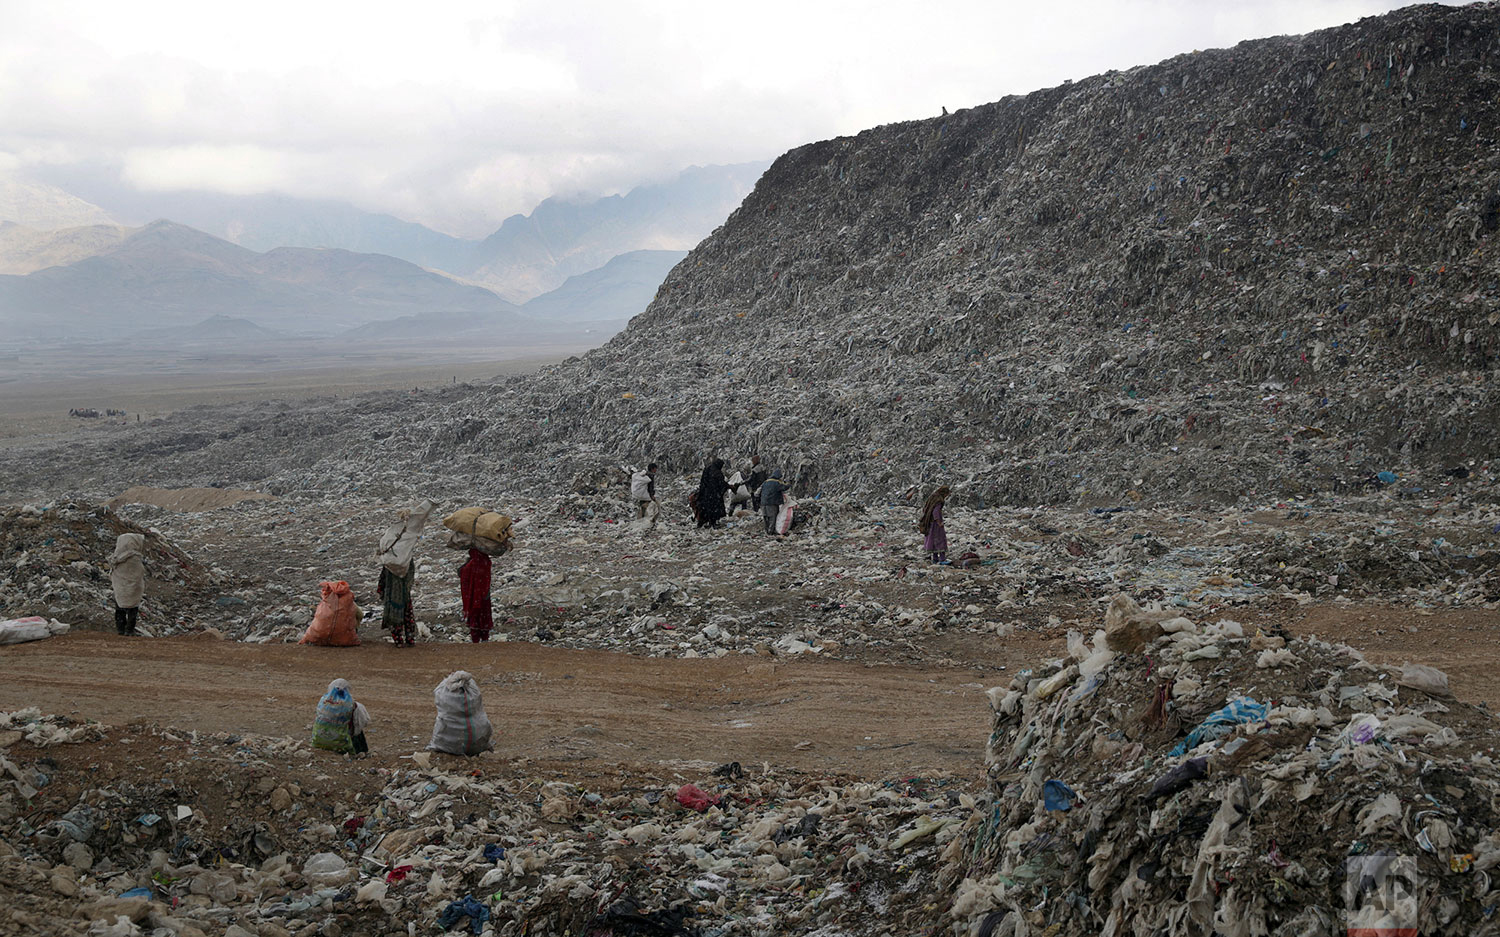 In this Tuesday, Dec. 11, 2018 photo, people, who scavenge recyclable materials from garbage for a living, walk near a mountain of garbage at the dump on the outskirts of Kabul, Afghanistan. (AP Photo/Massoud Hossaini)